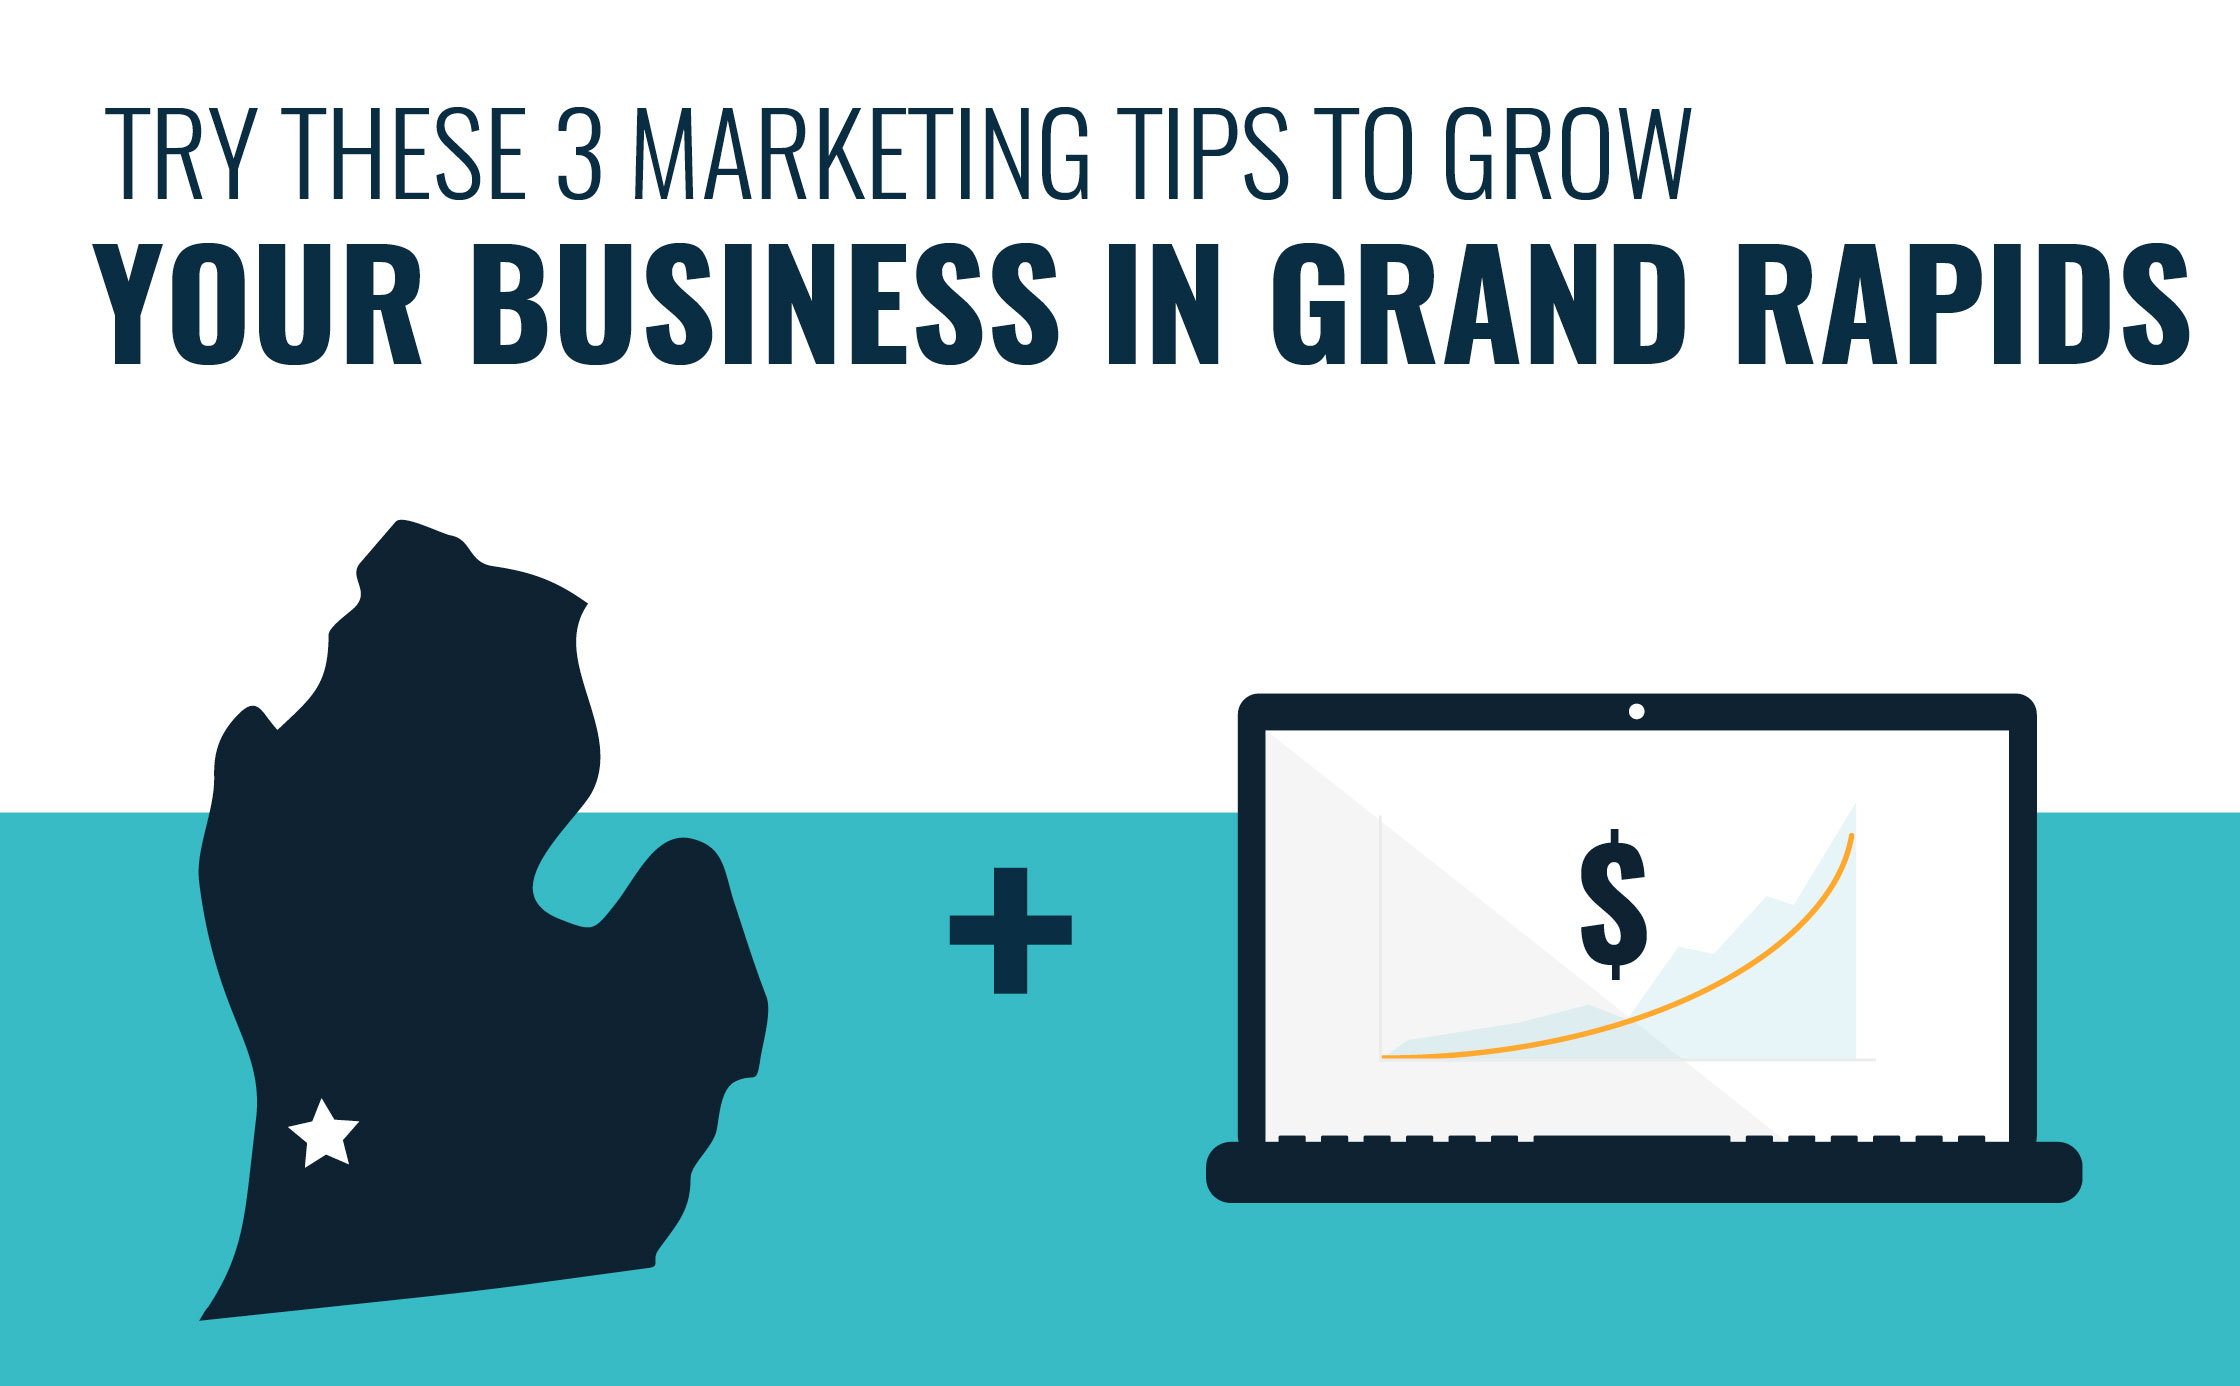 how-to-grow-grand-rapids-business